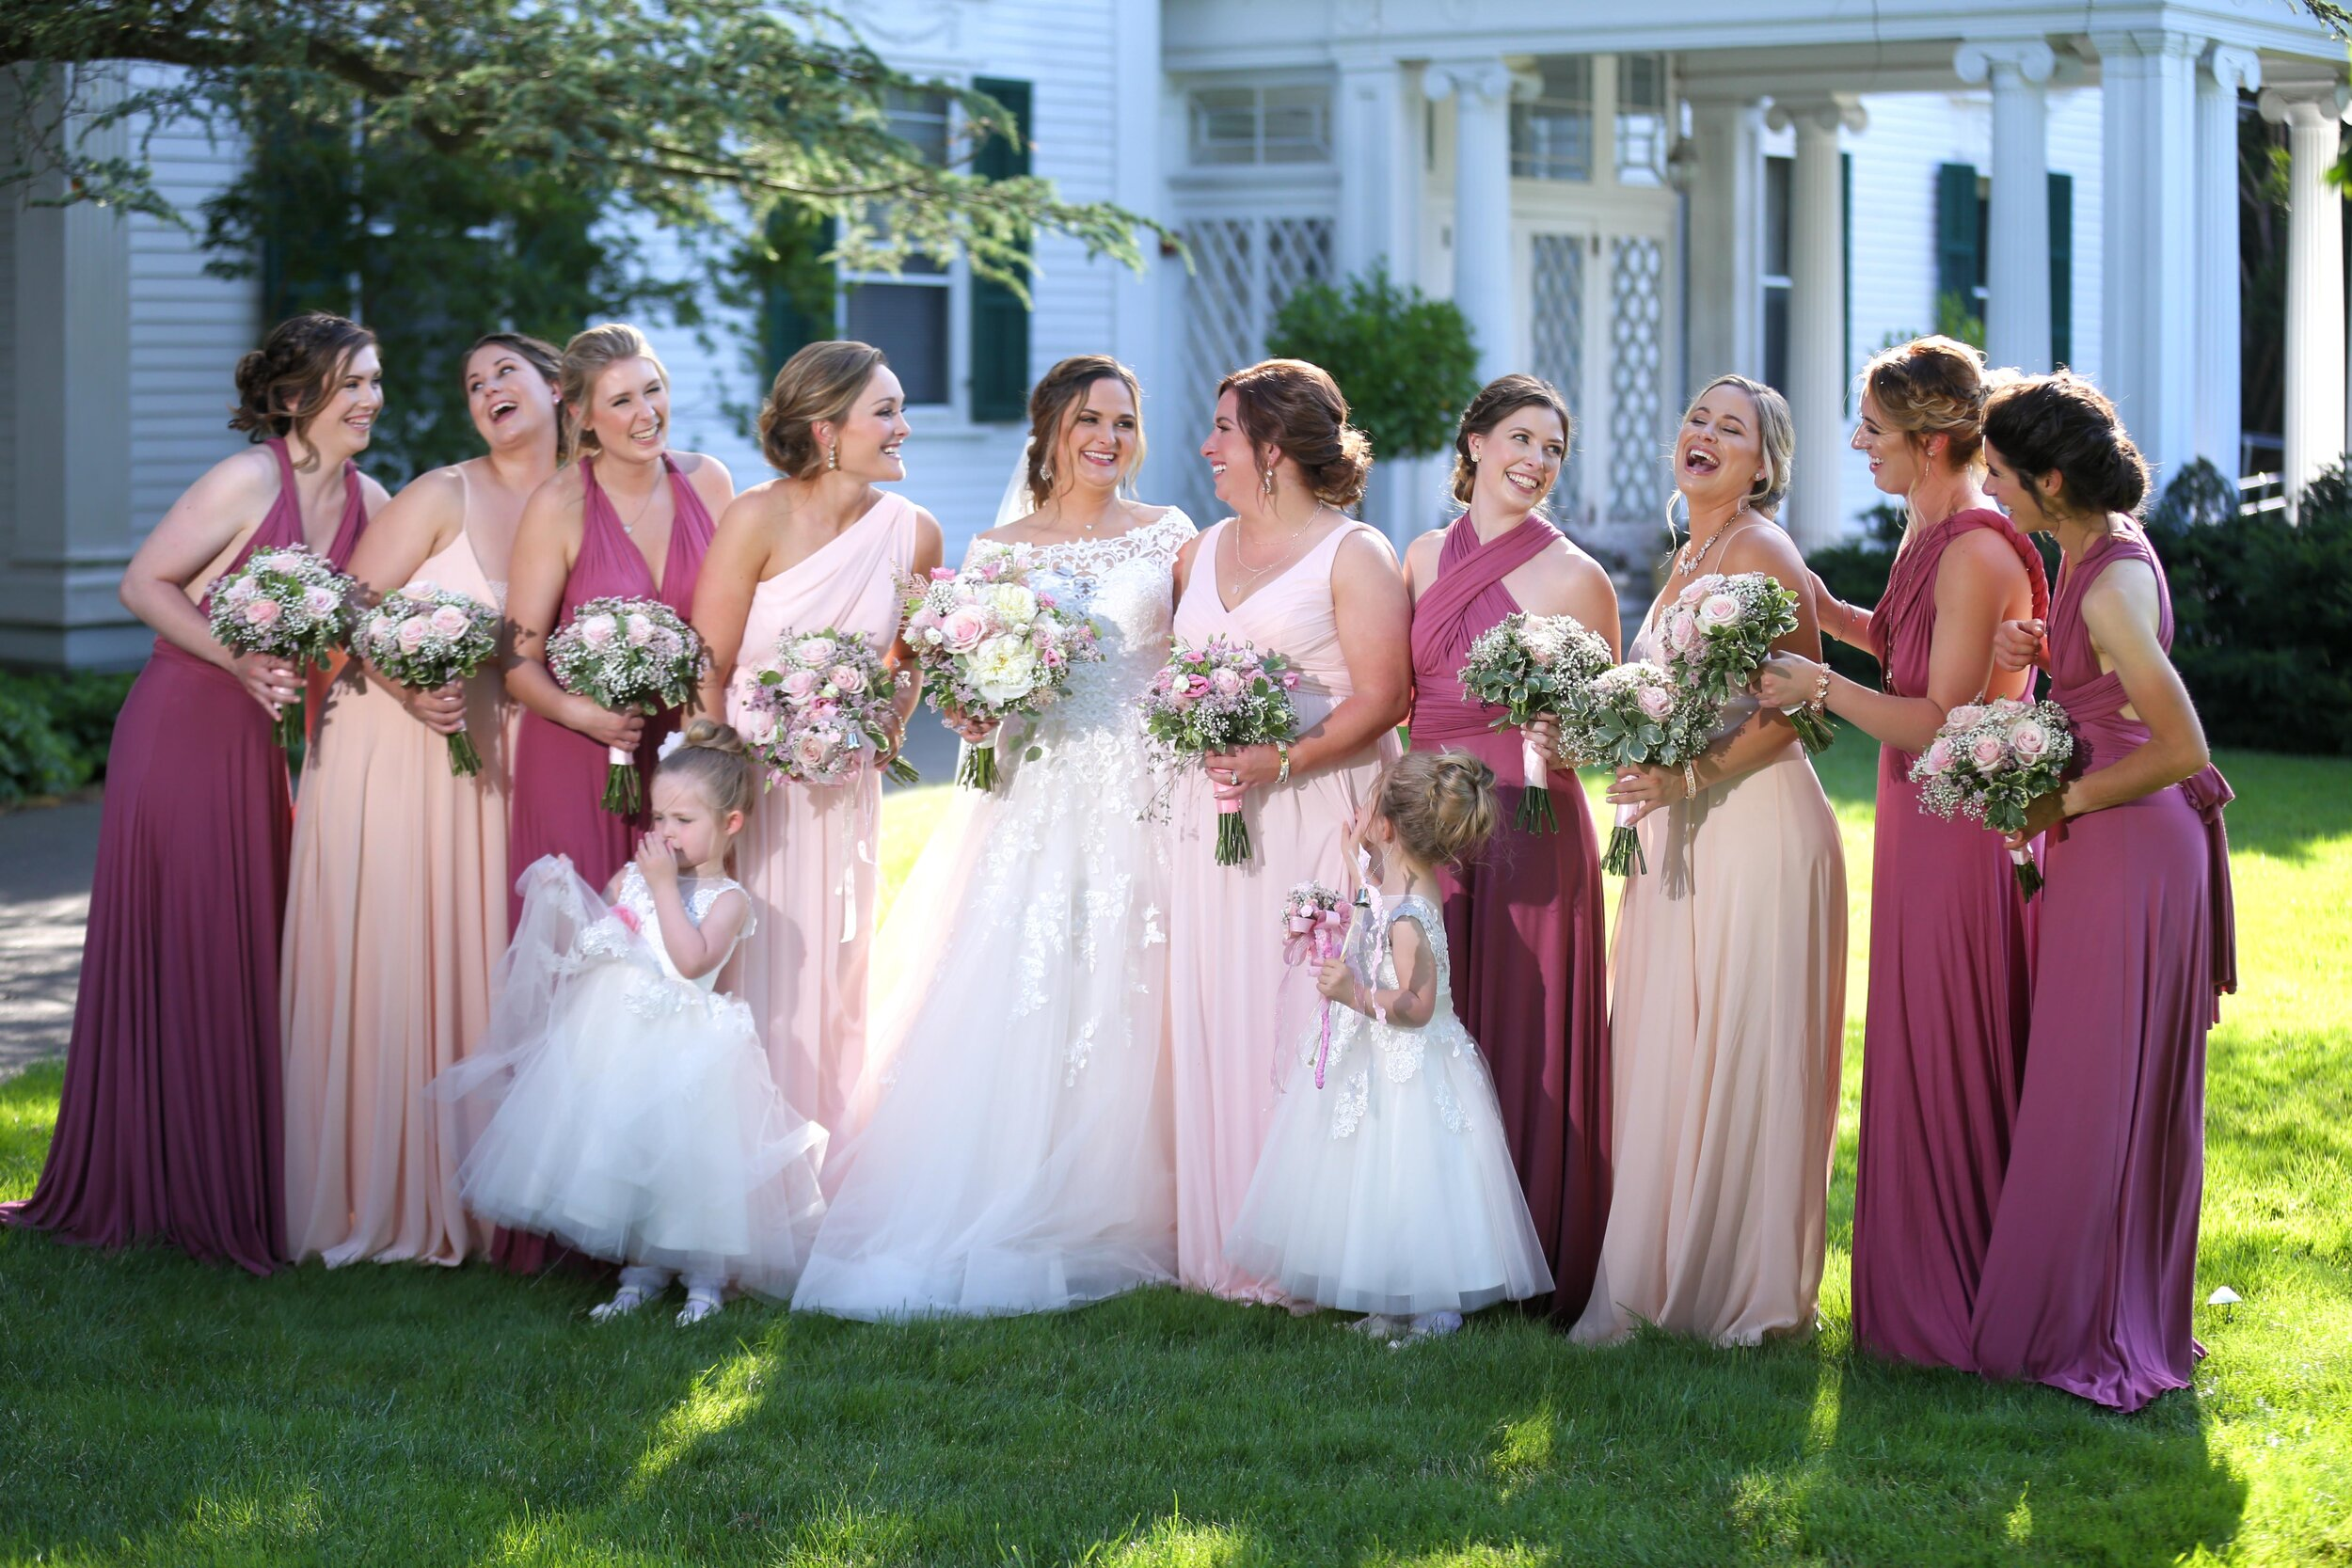 HOW TO PREPARE FOR YOUR WEDDING PHOTOS -